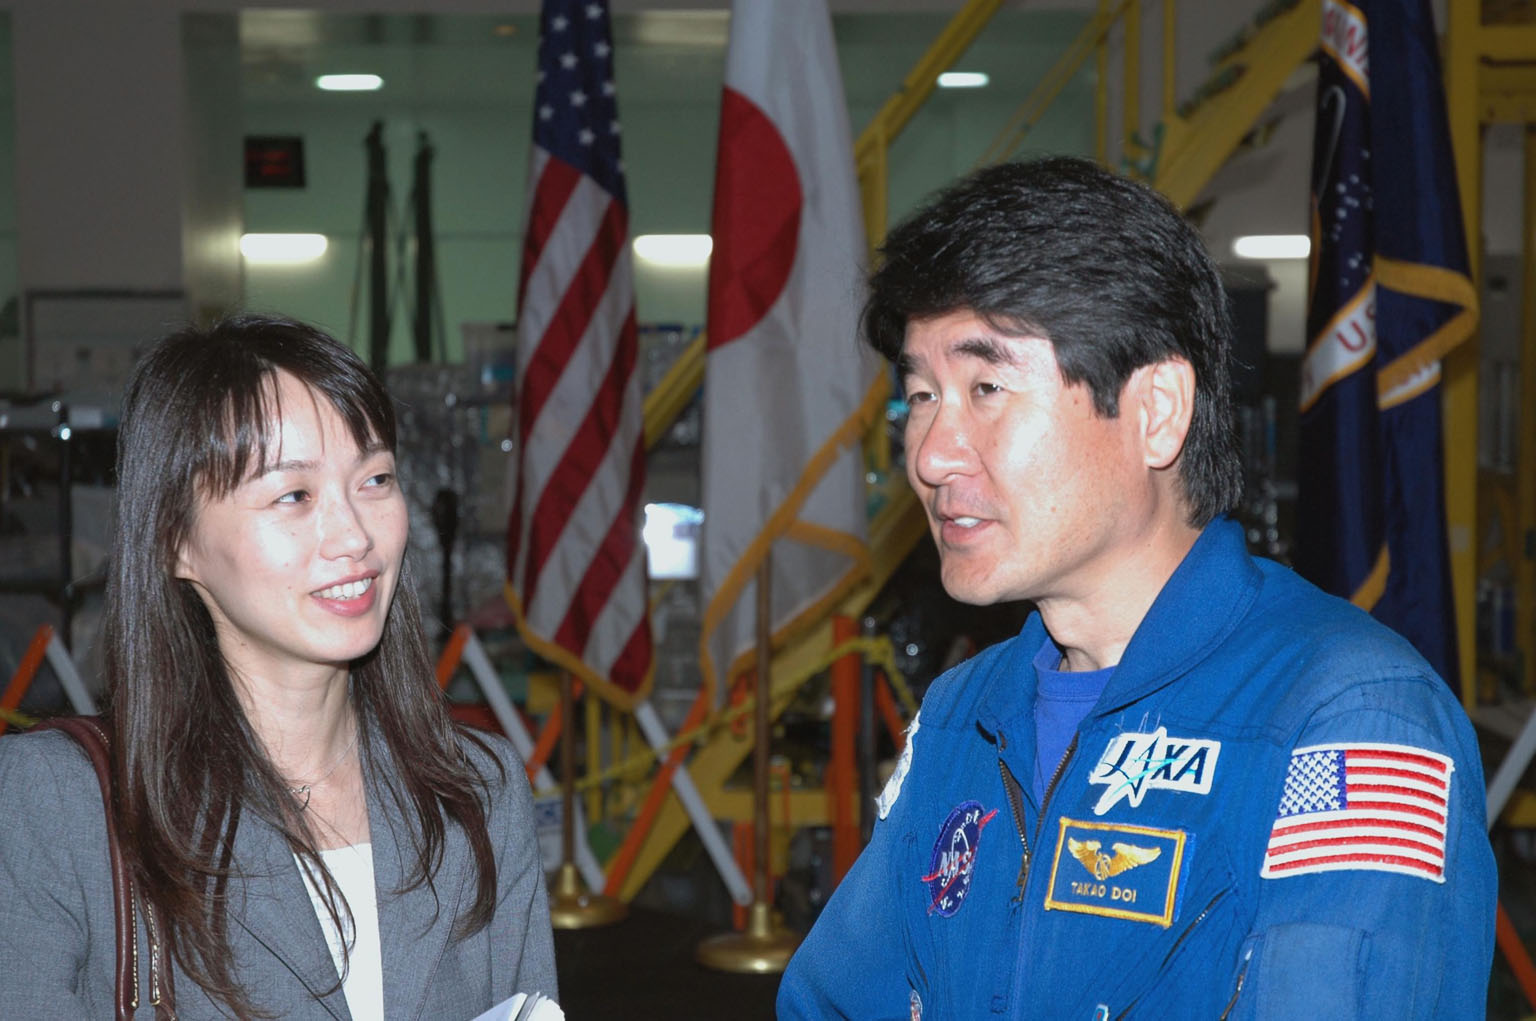 KENNEDY SPACE CENTER, FLA. -- After a welcoming ceremony for the Experiment Logistics Module Pressurized Section of the Japanese Experiment Module, astronaut Takao Doi (right) talks with Kumiko Tanabe, a public affairs representative of the Japanese Aerospace and Exploration Agency. The logistics module will be delivered to the space station on mission STS-123. Doi is a crew member on that mission.The module will serve as an on-orbit storage area for materials, tools and supplies. It can hold up to eight experiment racks and will attach to the top of another larger pressurized module. Photo credit: NASA/George Shelton